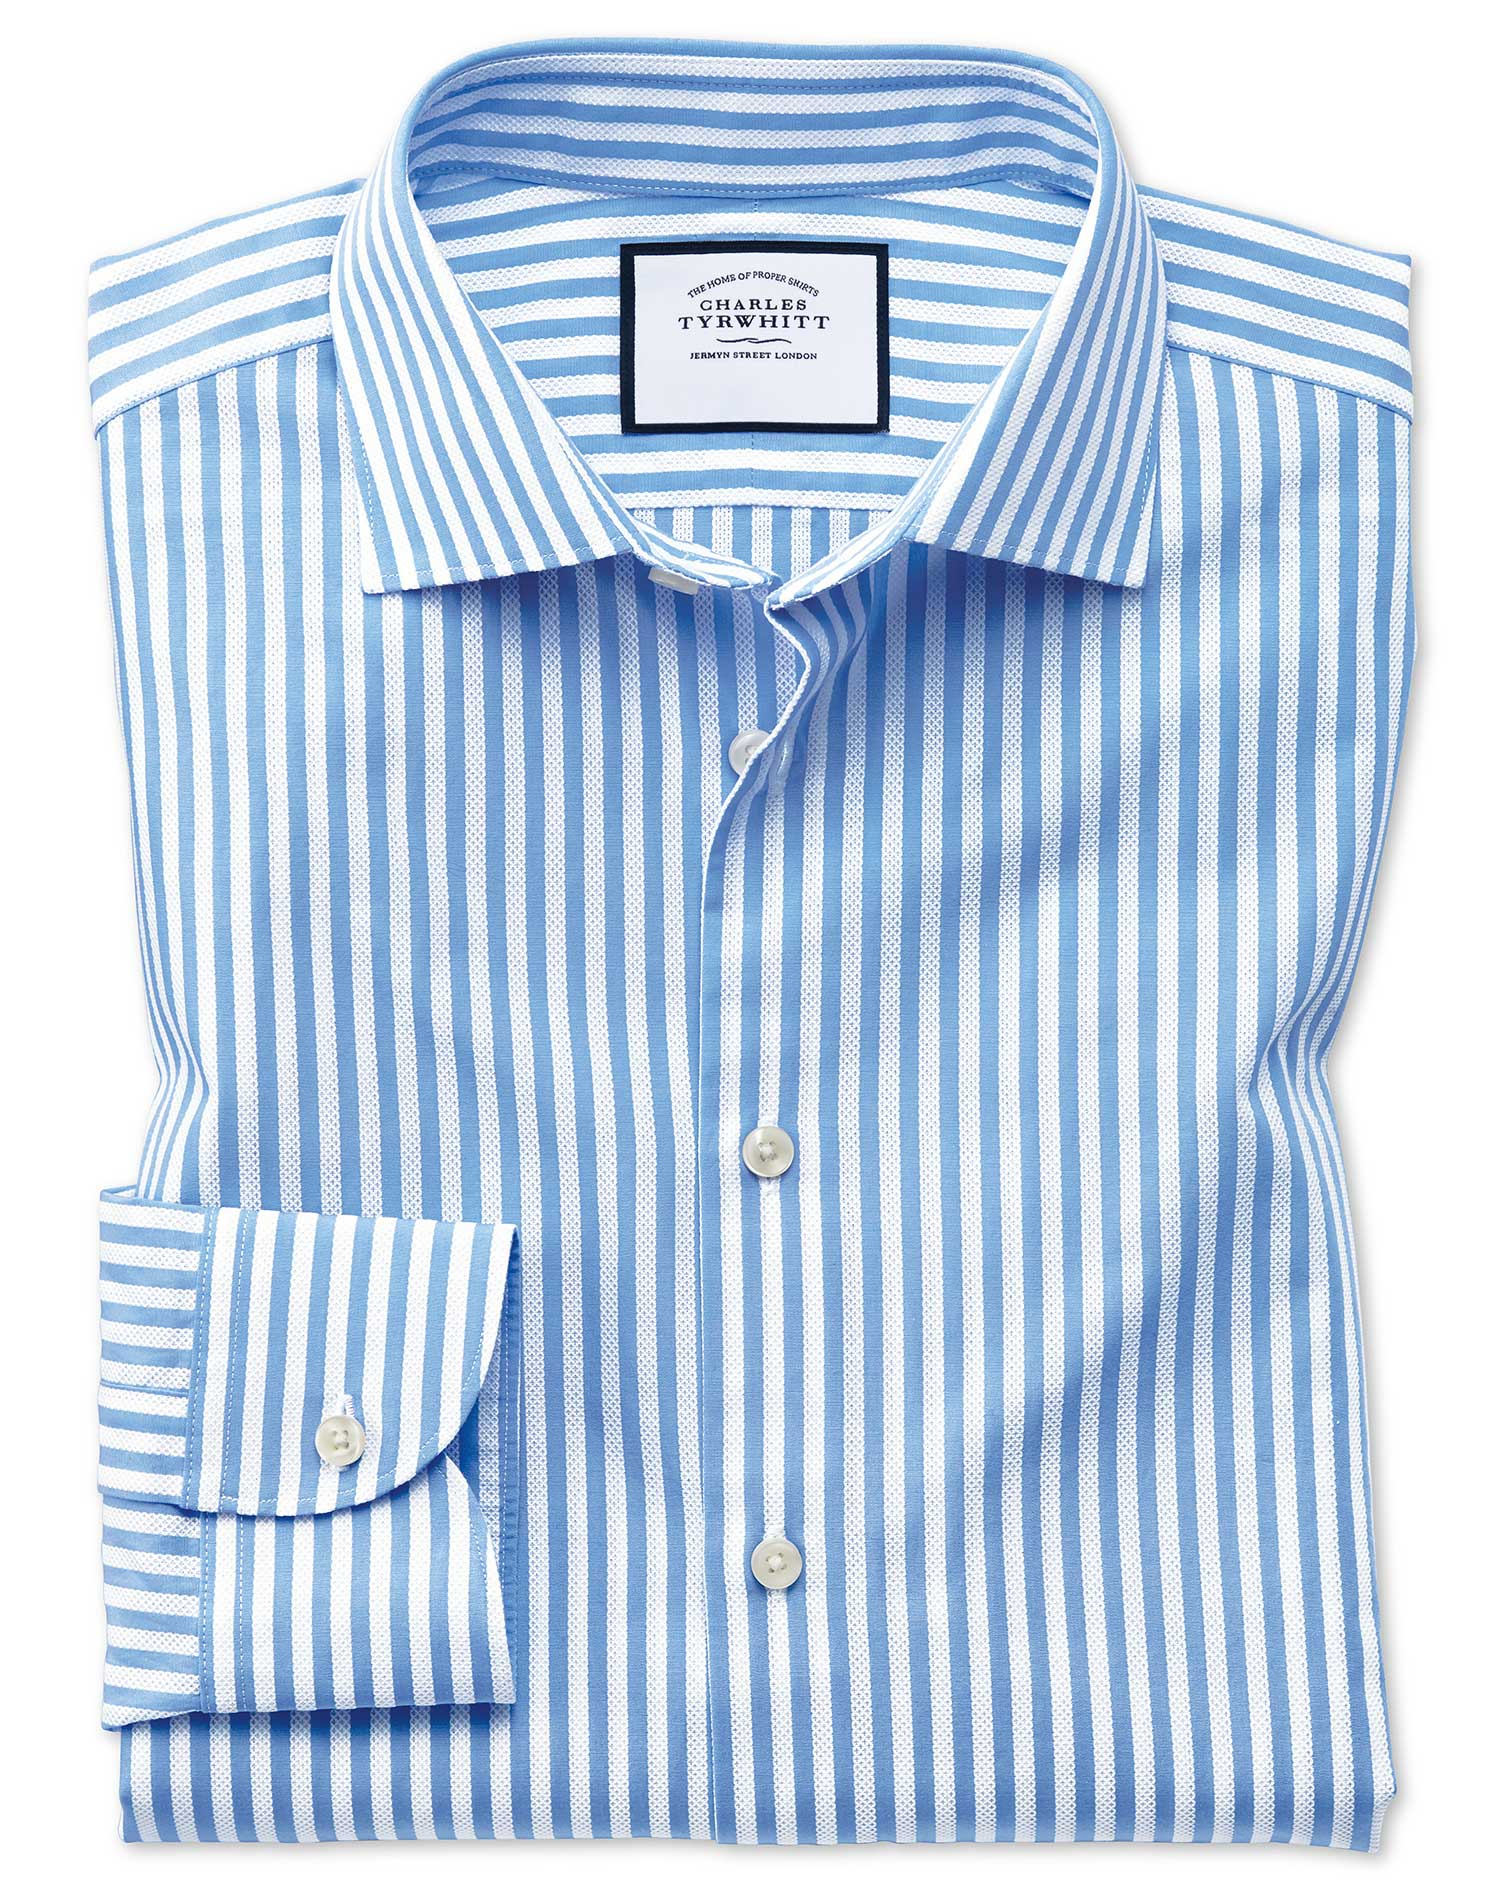 Slim Fit Business Casual Leno Texture Stripe Sky Blue and White Cotton Formal Shirt Single Cuff Size